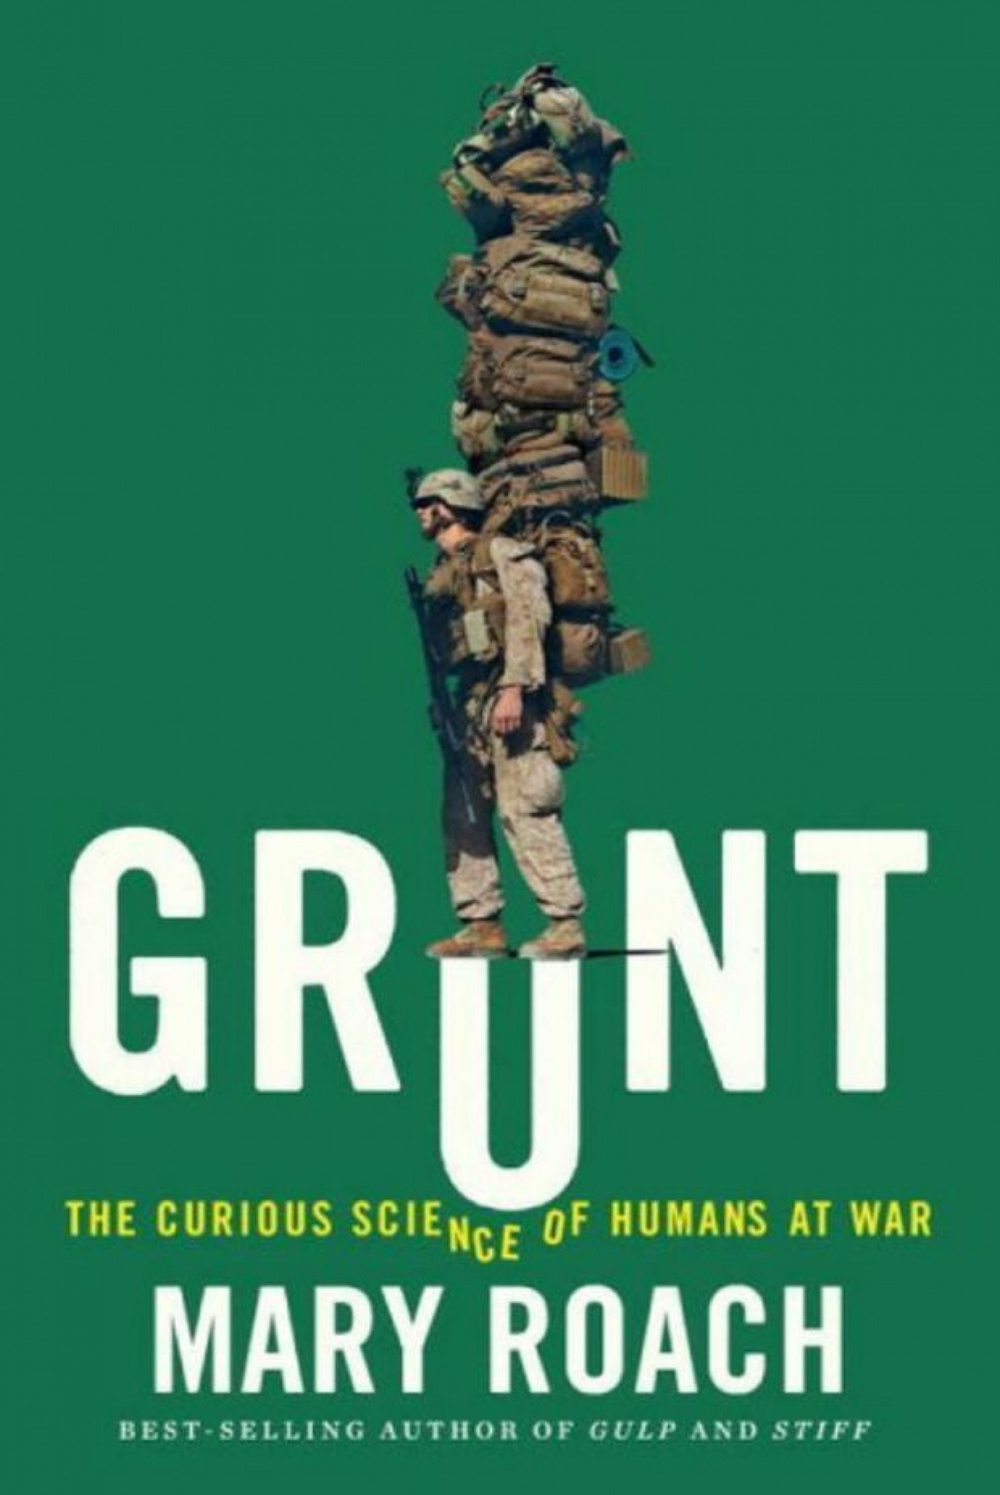 A Conversation with Mary Roach, Author of Grunt: The Curious Science of Humans at War